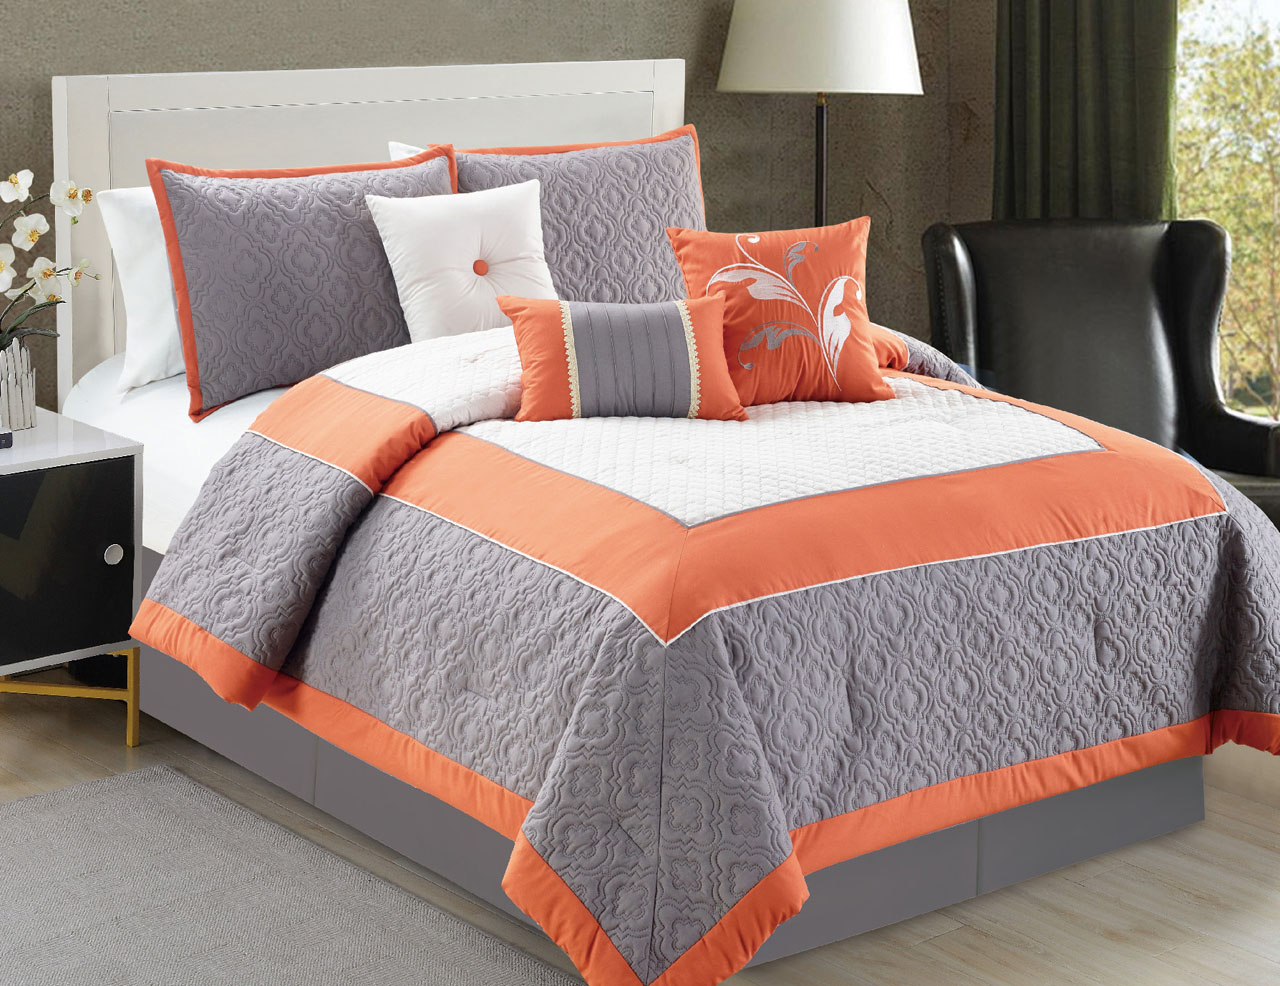 The gallery for orange and gray bedding - Orange and grey comforter ...